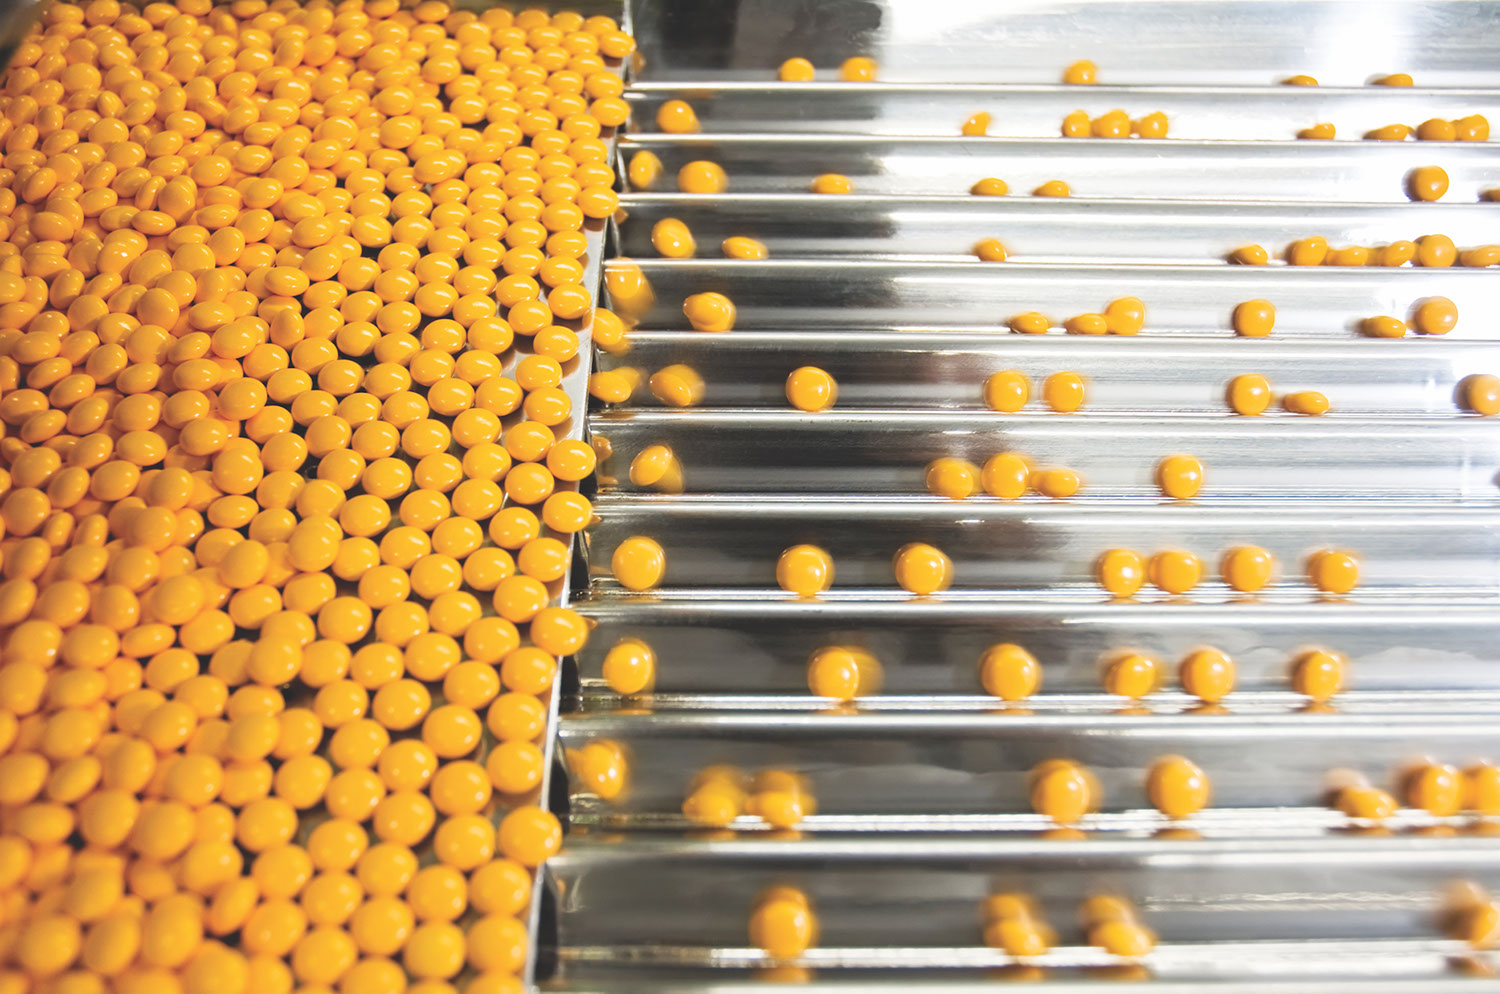 E55   Manufacture of Pharmaceutical and Biopharmaceutical Products